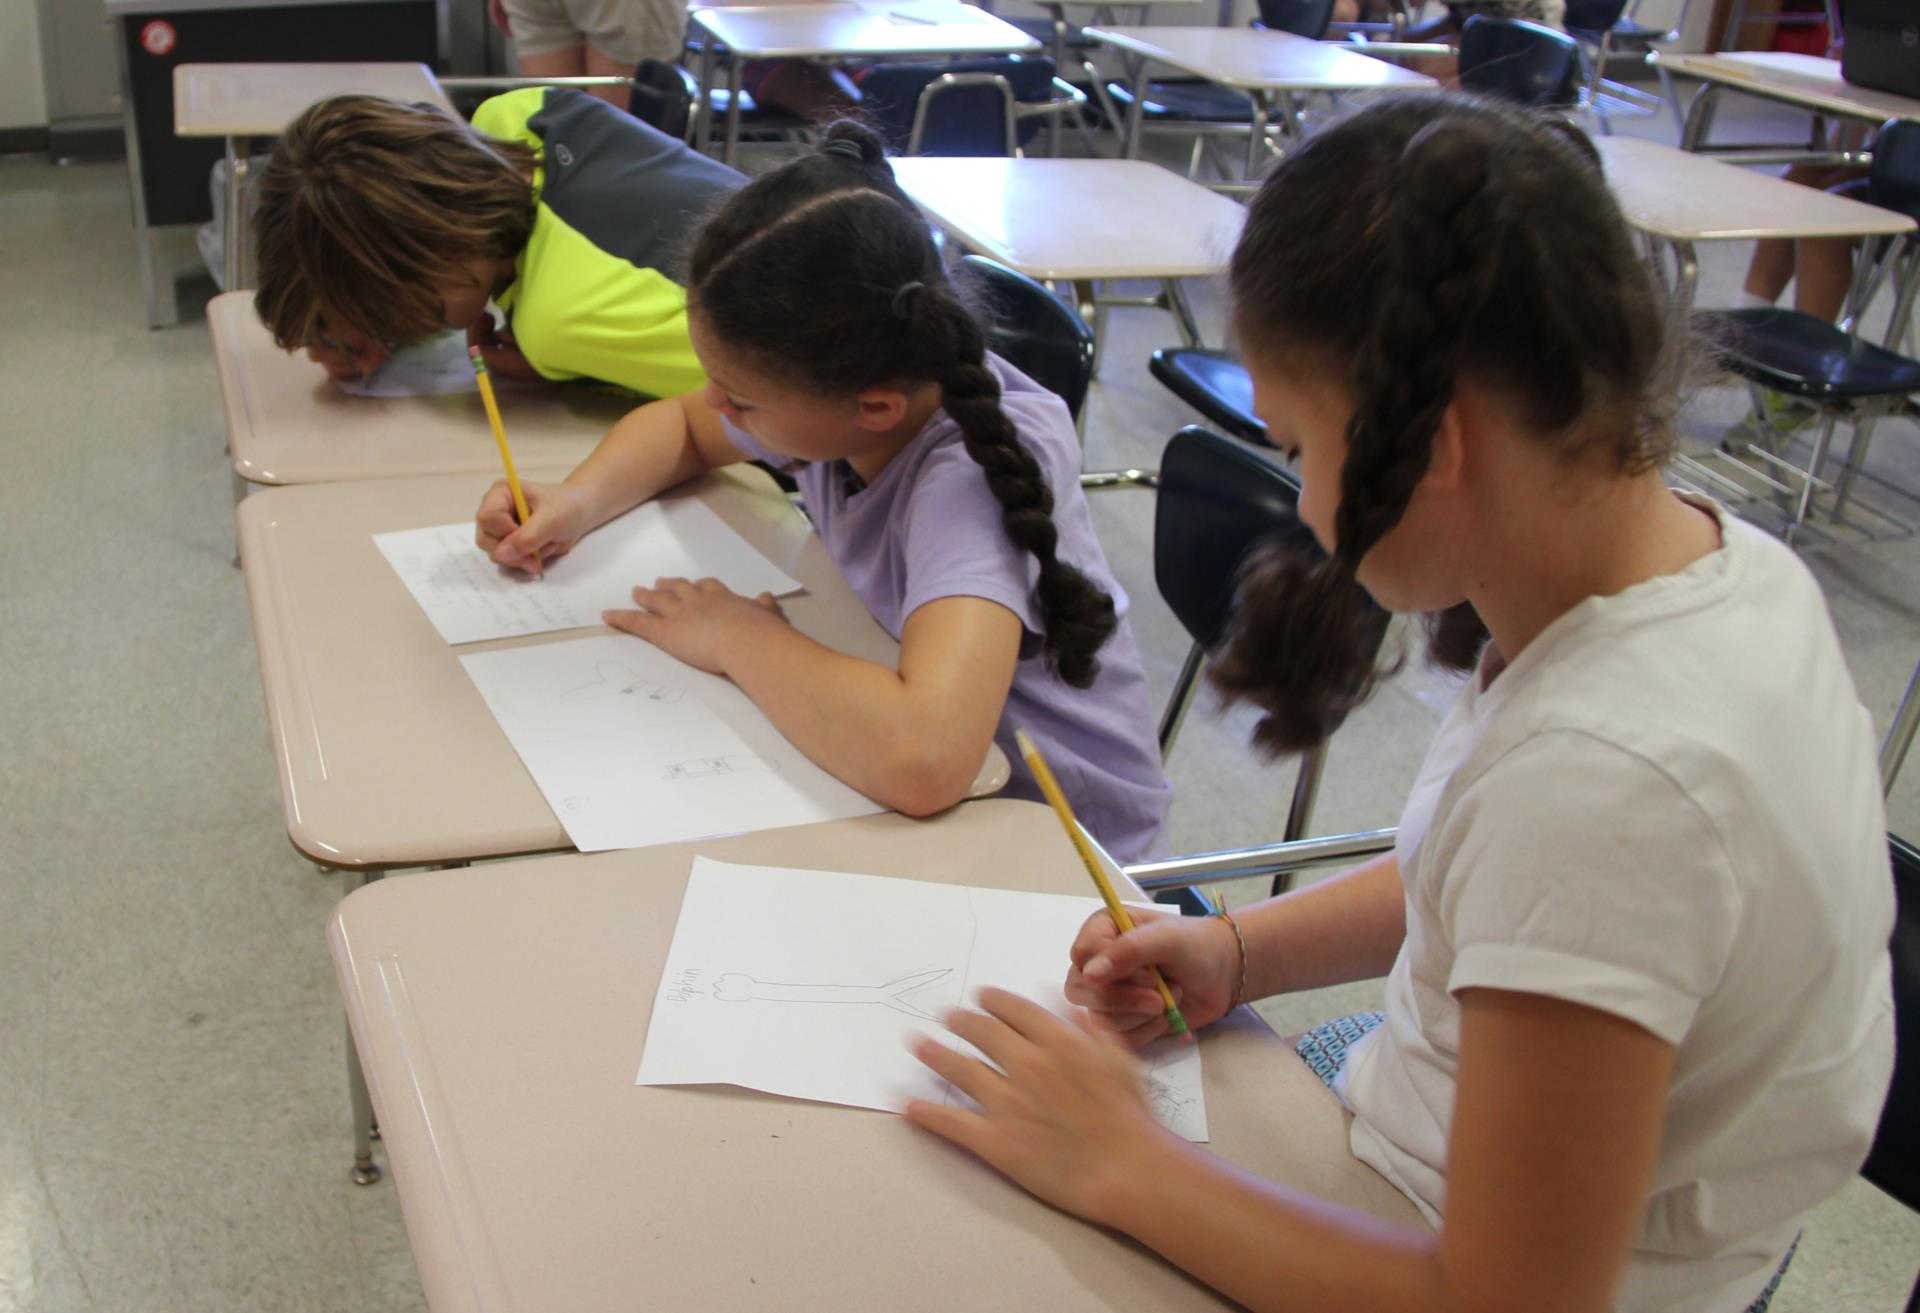 students writing research information on paper